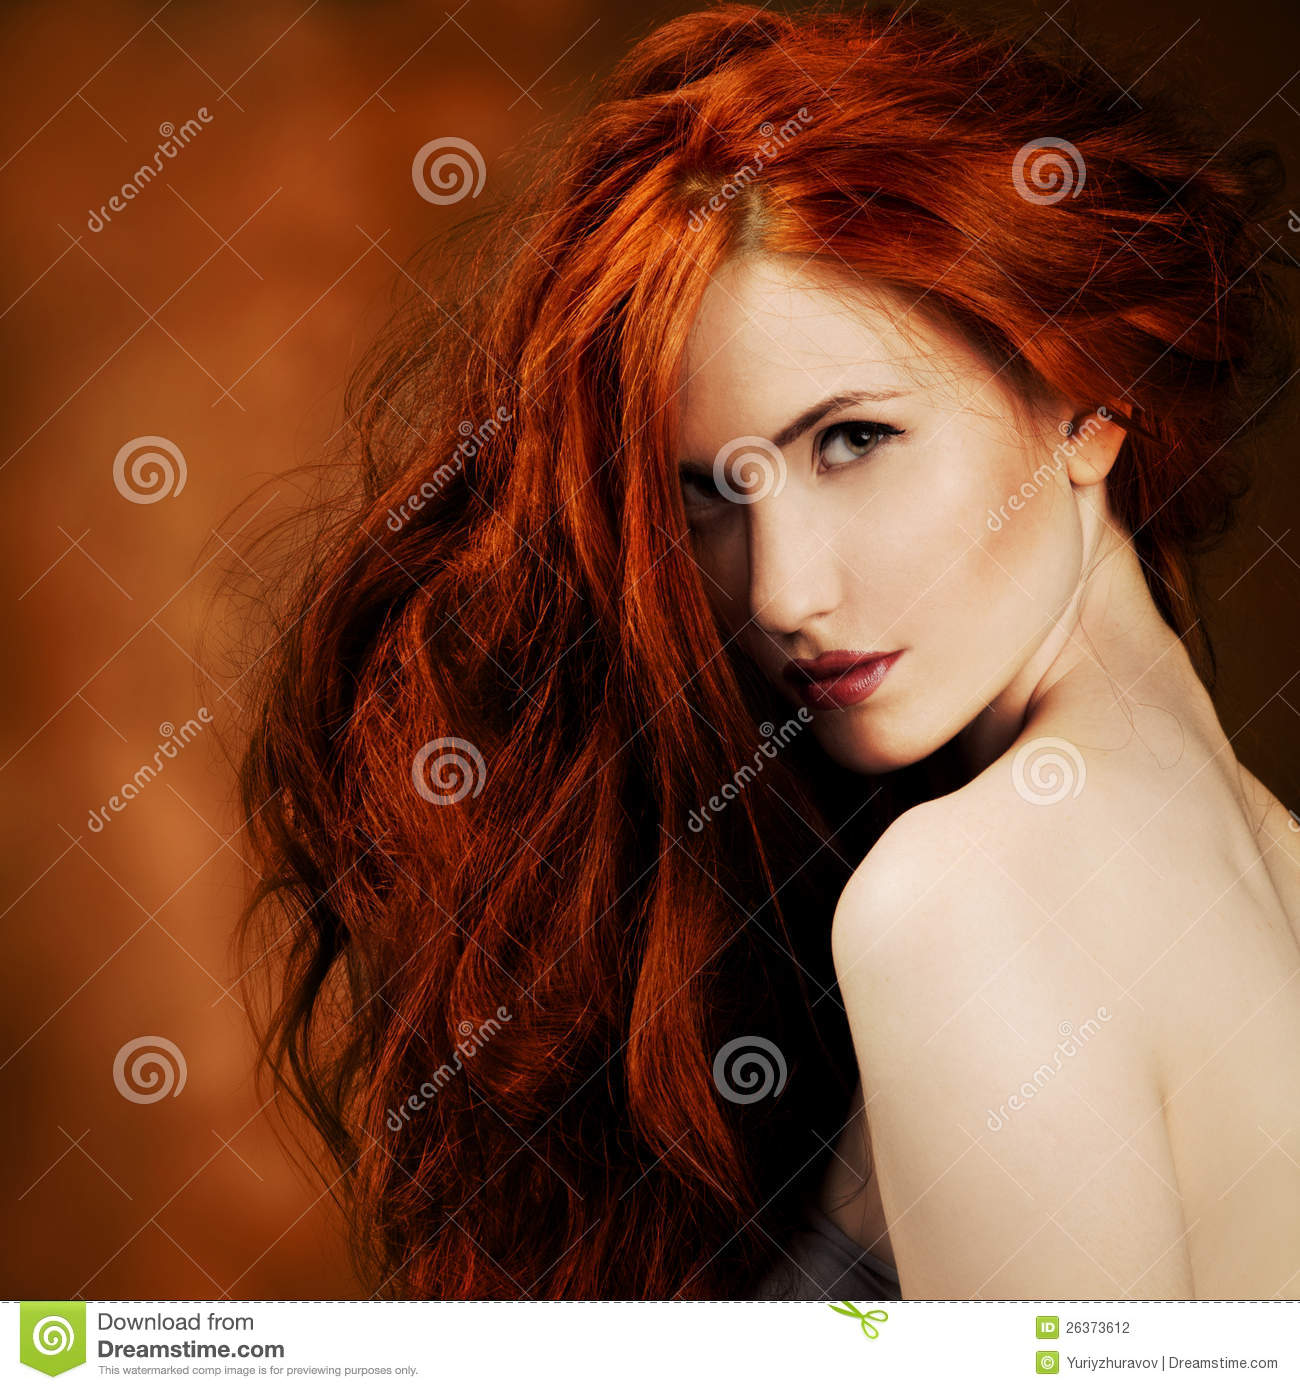 Red Hair Fashion Girl Portrait Stock Photography Image